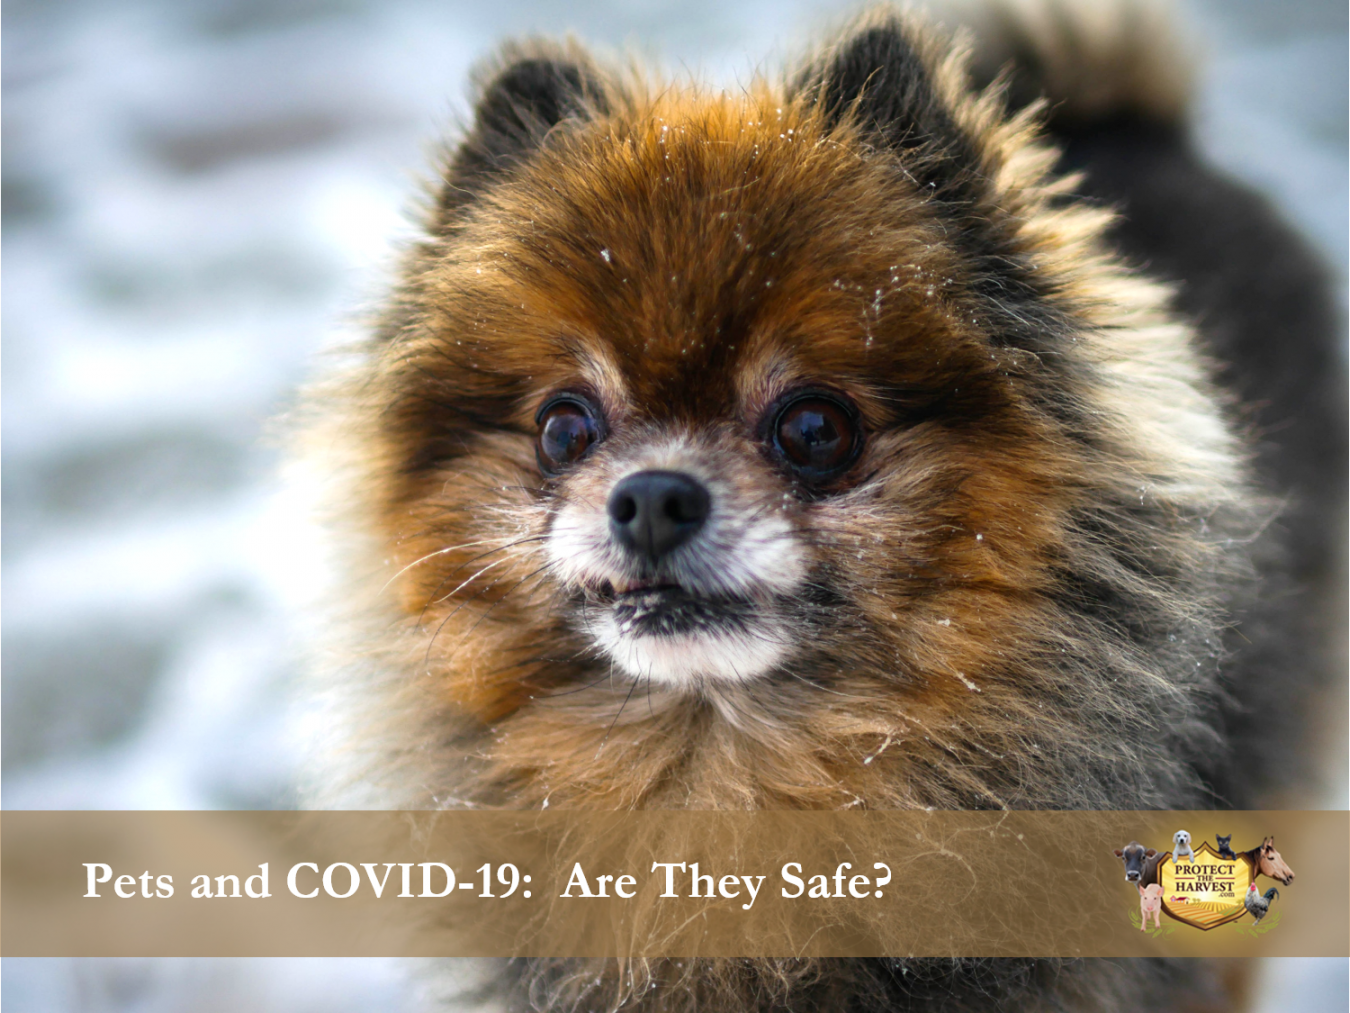 Pets and COVID-19: Are They Safe?